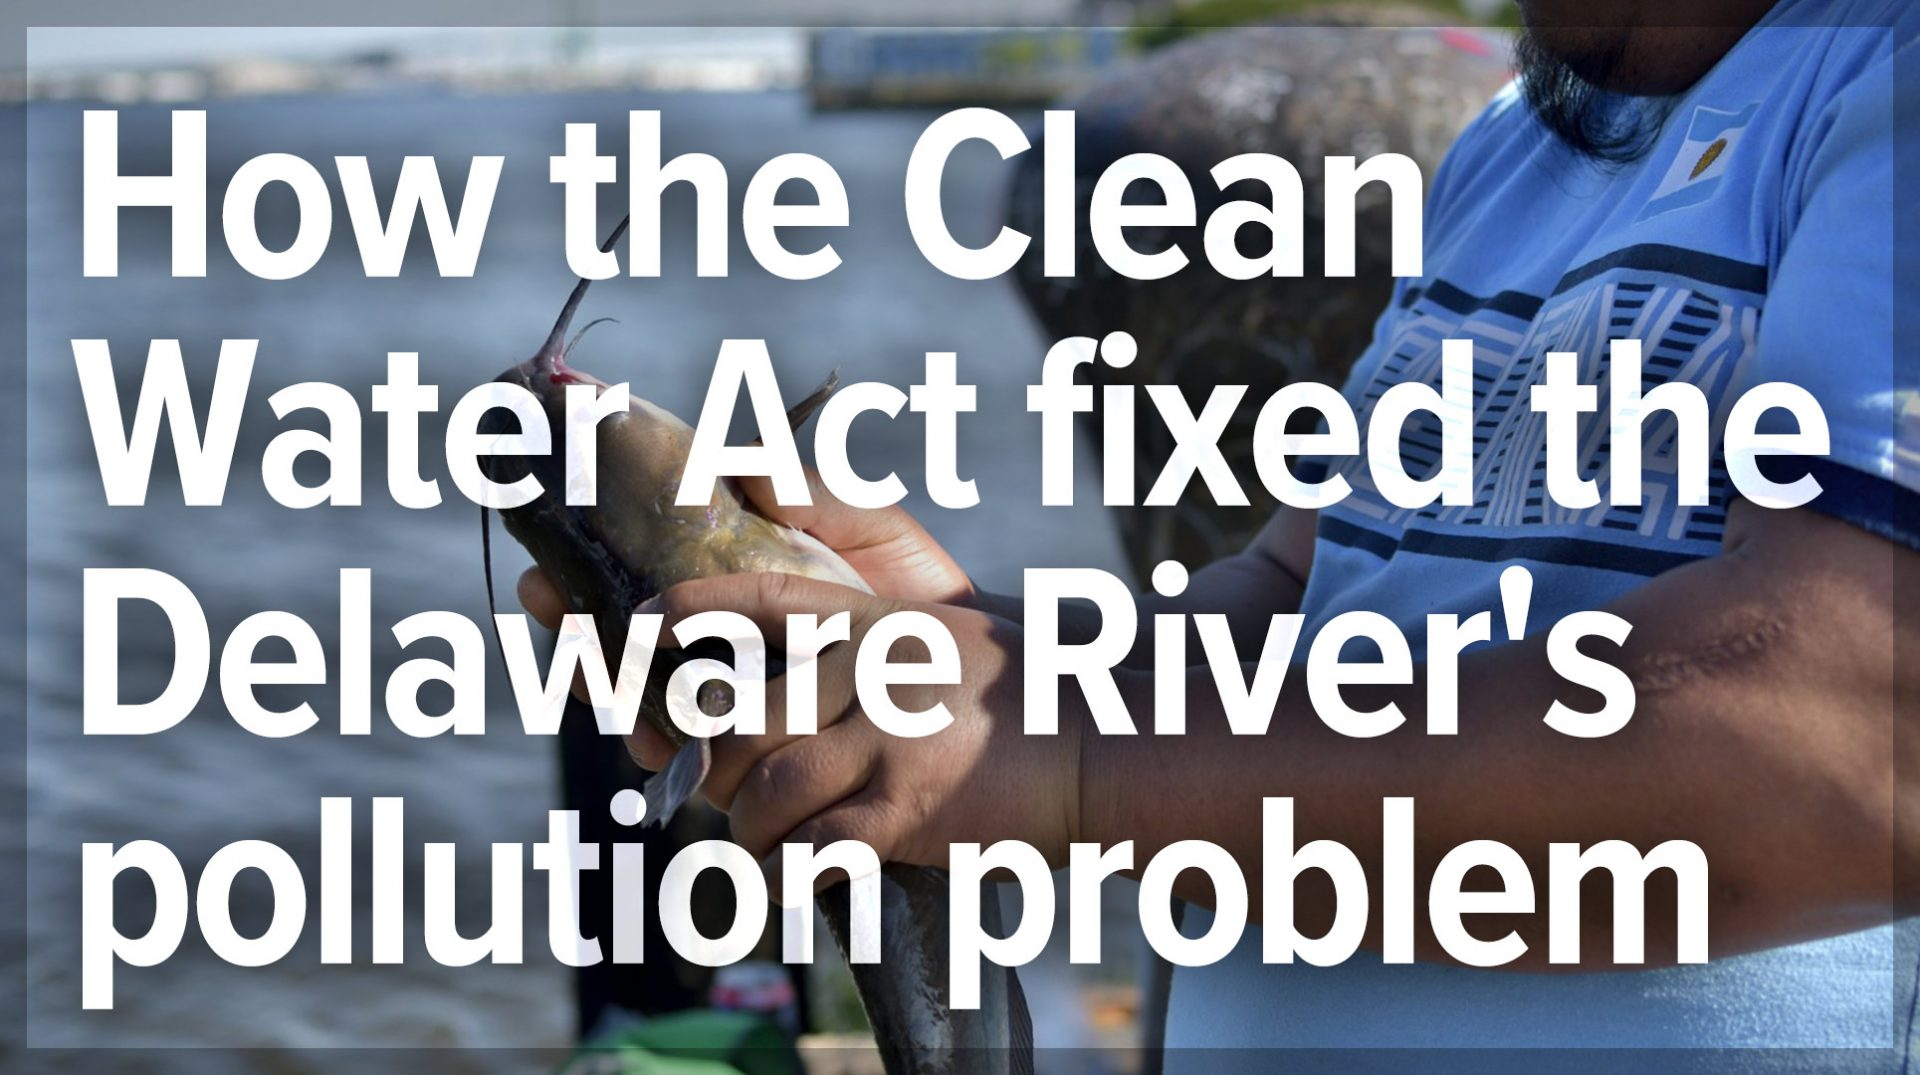 How the Clean Water Act fixed the Delaware River's pollution problem